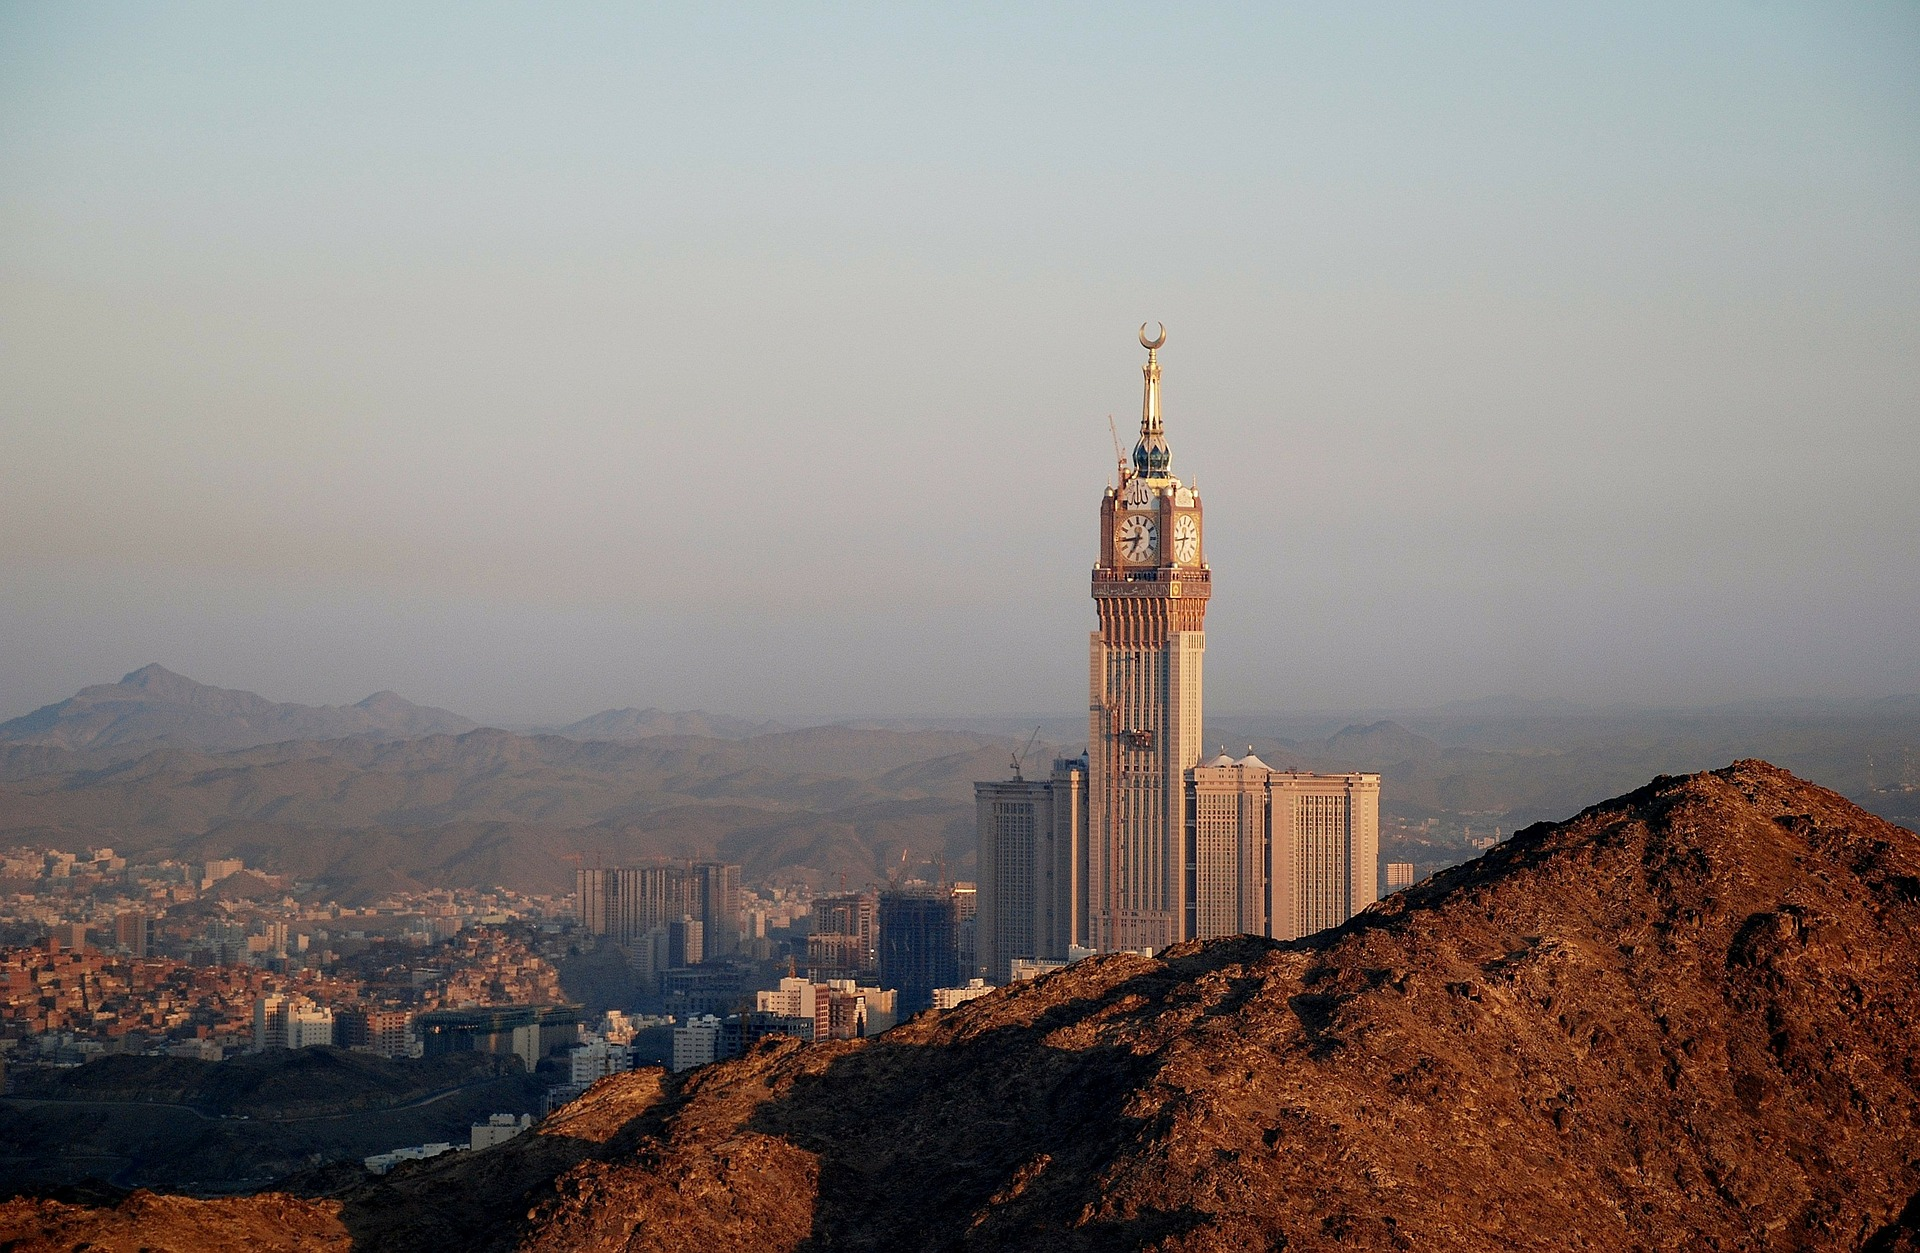 Abraj Al-Bait from the top of a hill